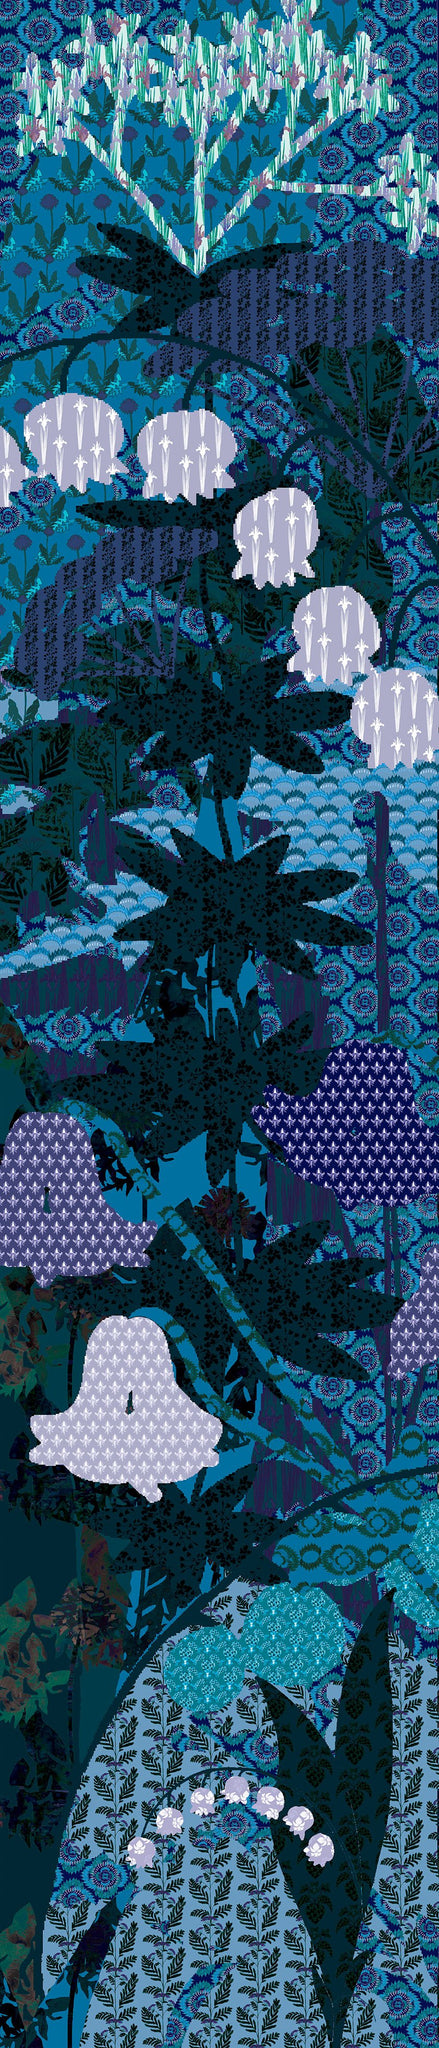 Pixel handmade unique rectangular silk scarf with blue and purple collage floral print designed by Szonja Daniel